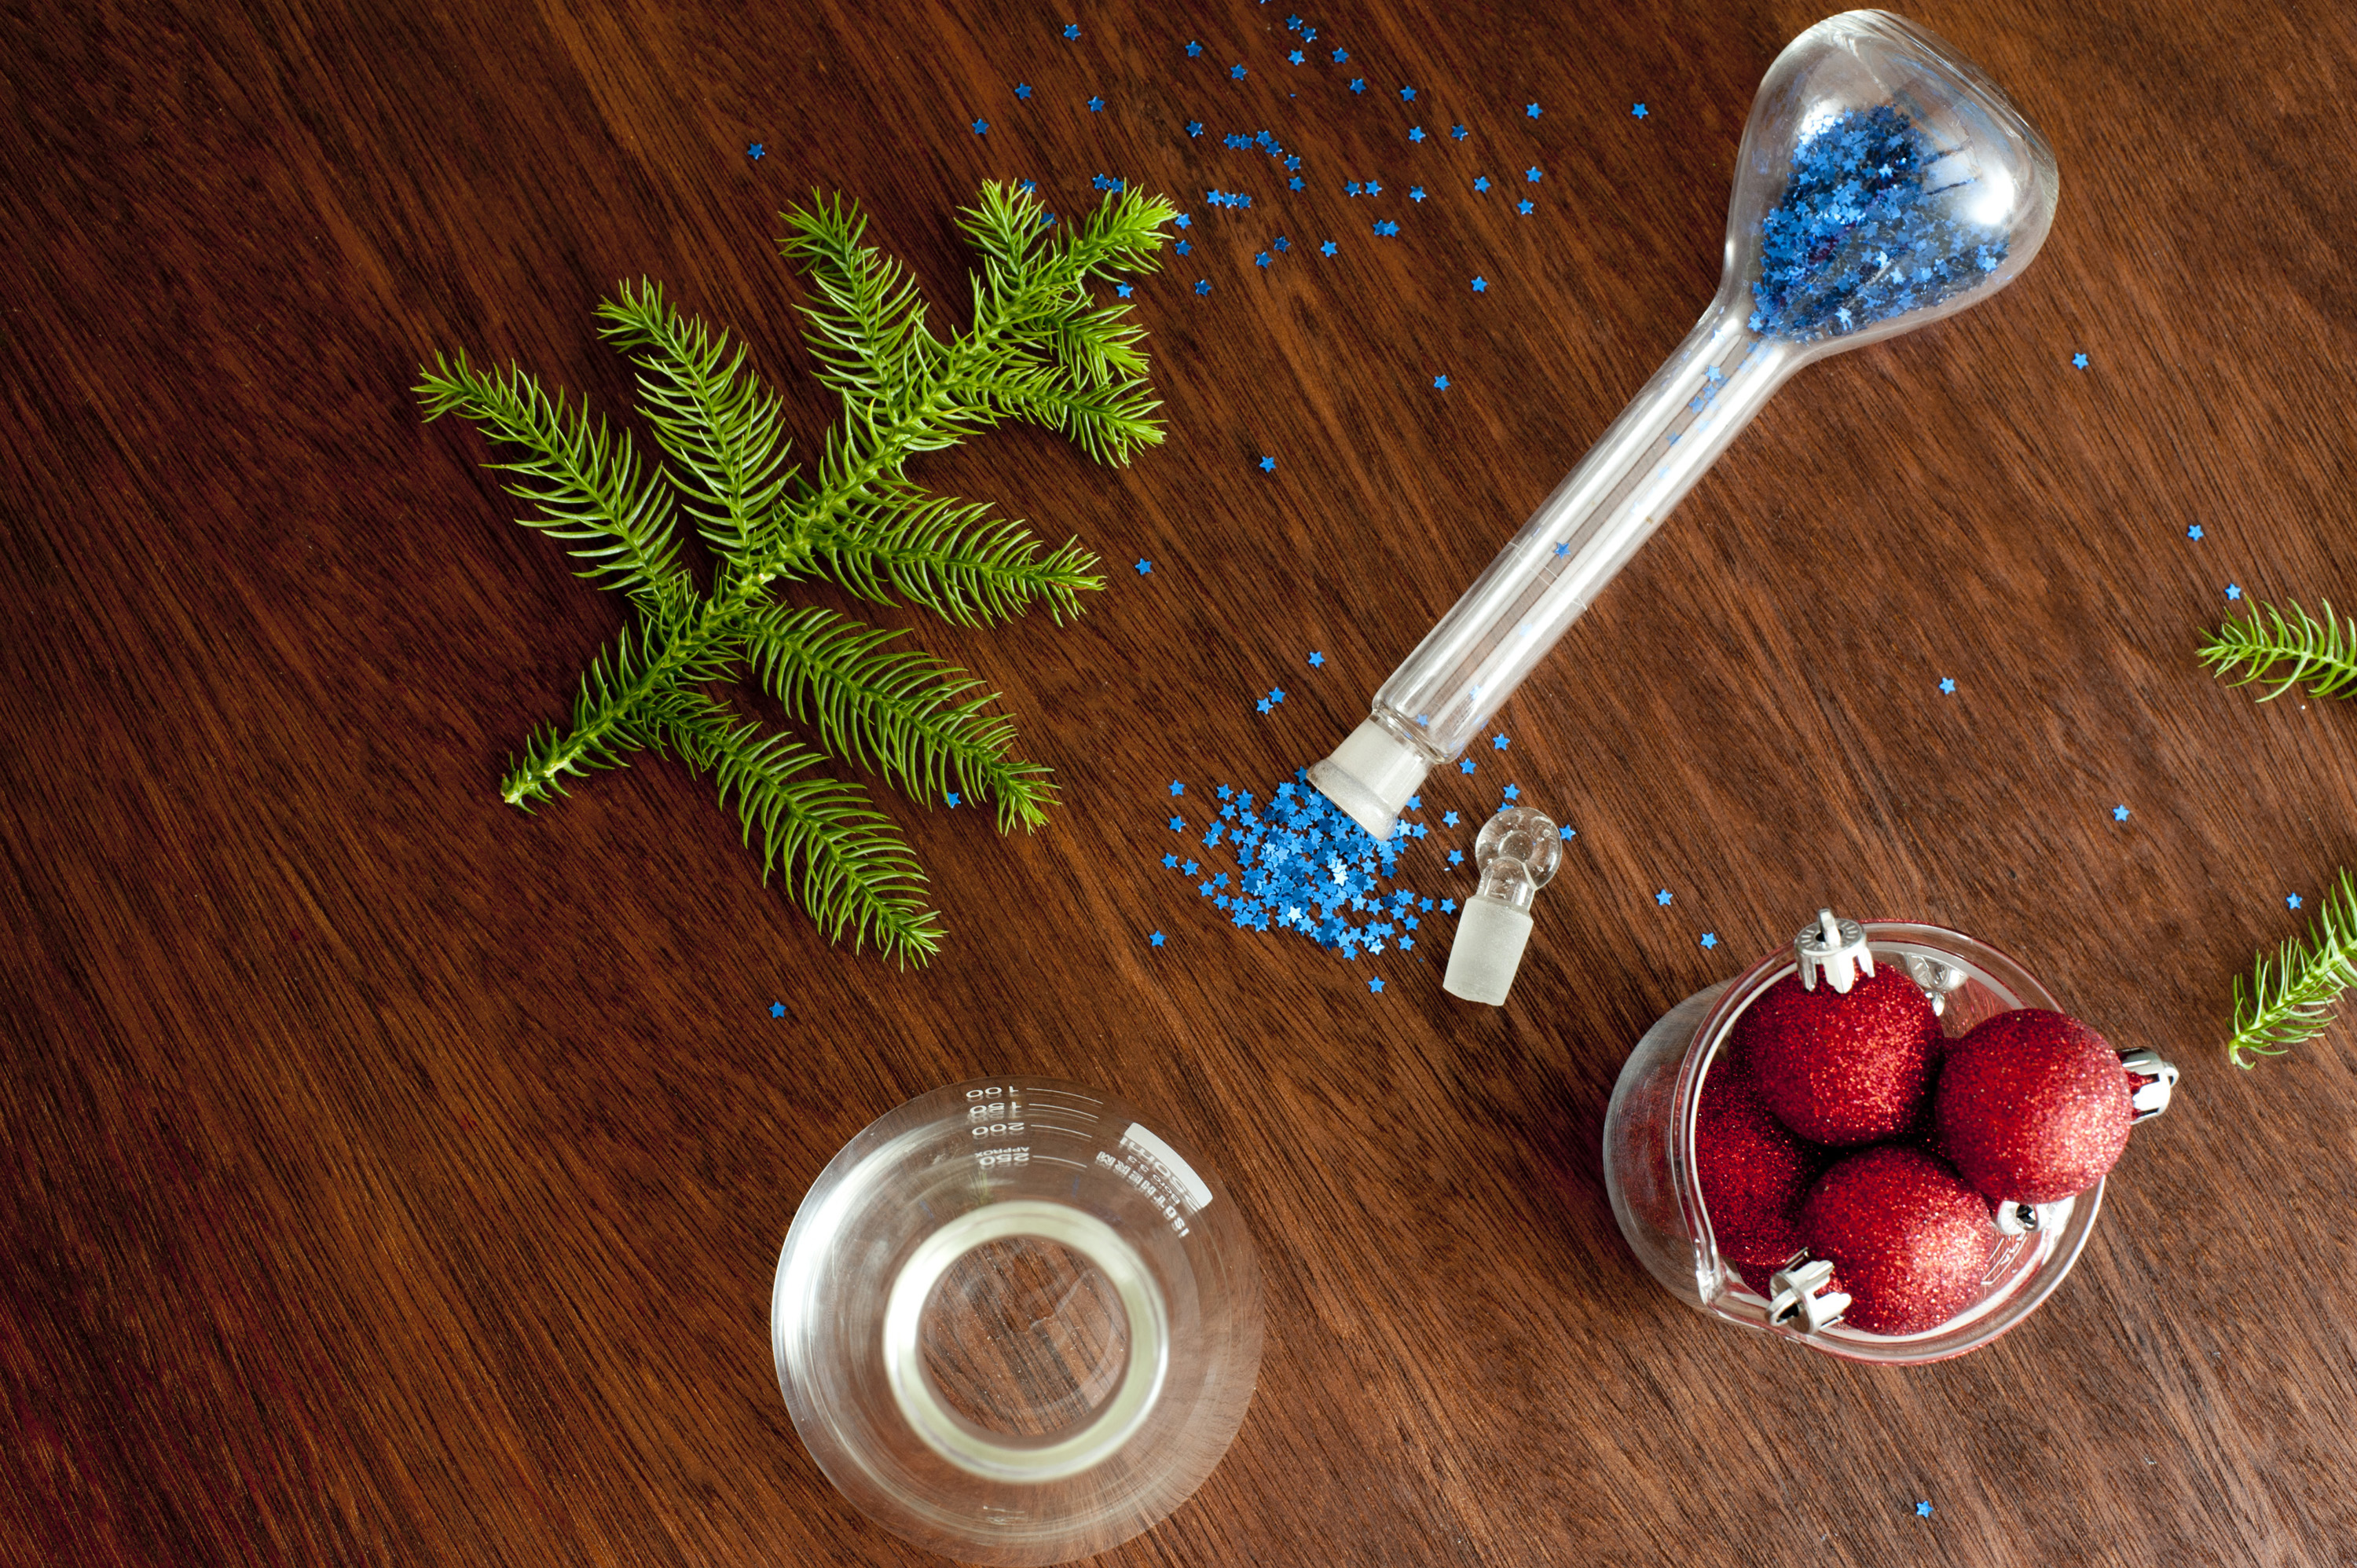 red Christmas balls and fir tree branch on wooden surface with chemistry beakers